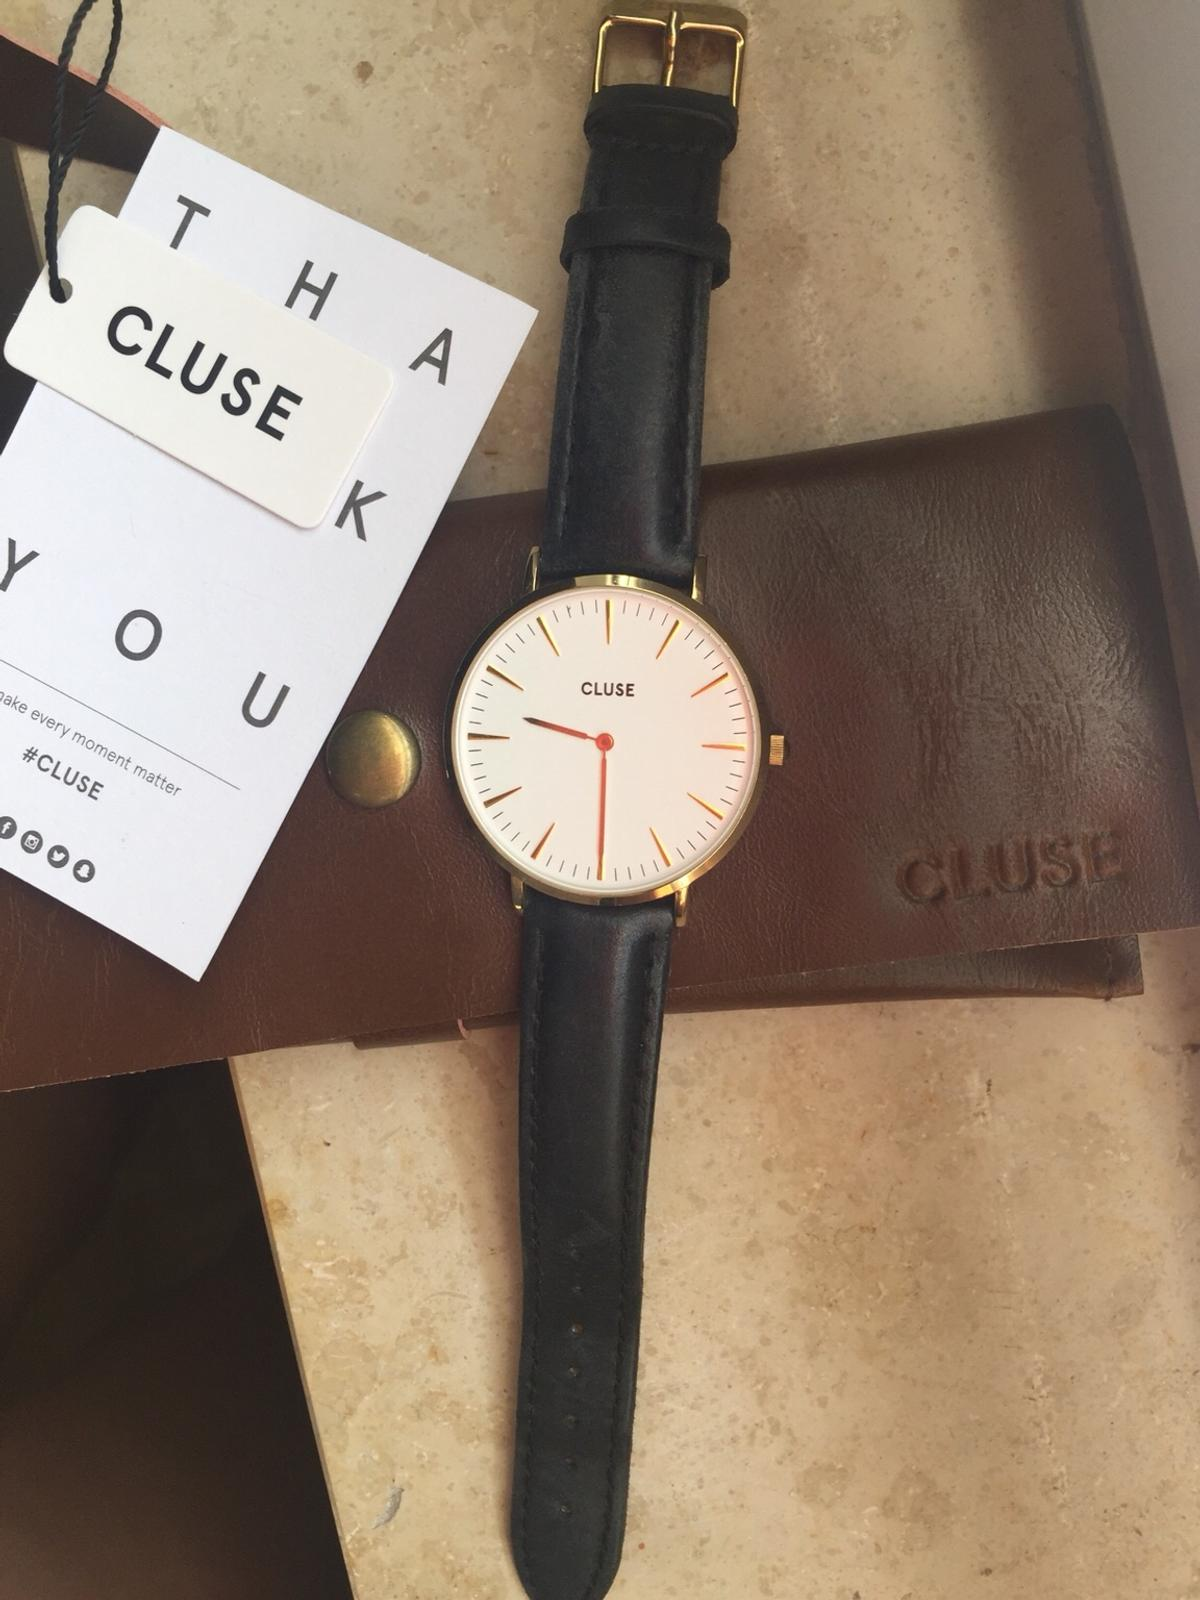 Cluse Uhr Schwarz Gold In 90763 Fürth For 20 00 For Sale Shpock